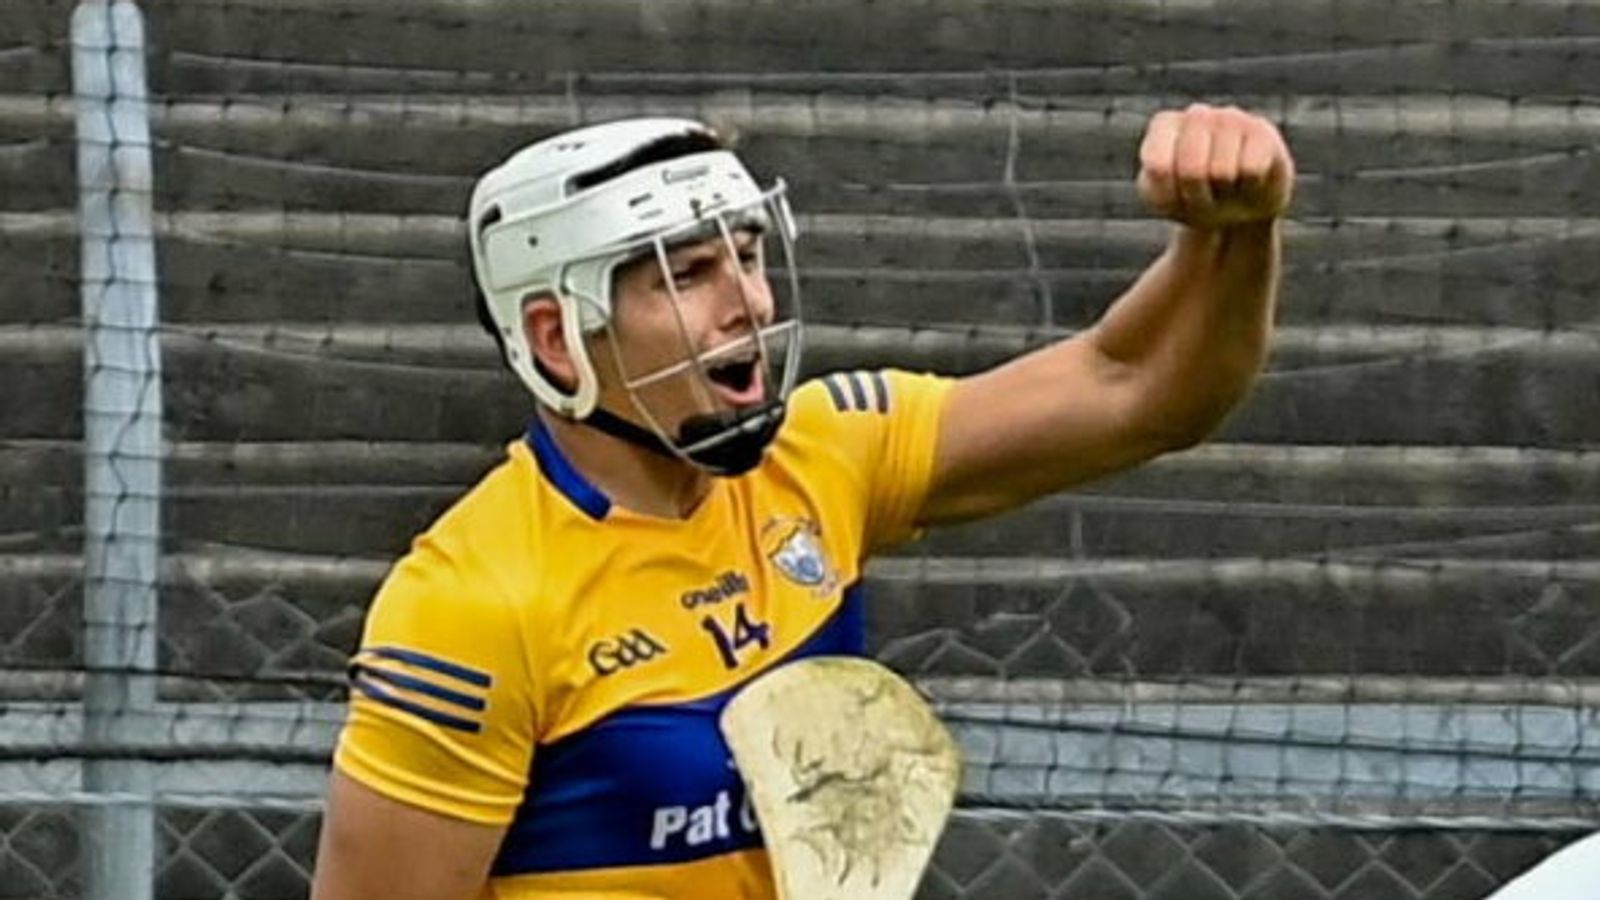 National Hurling League: Clare beat Kilkenny, Wexford hold off Dublin, Kildare win promotion